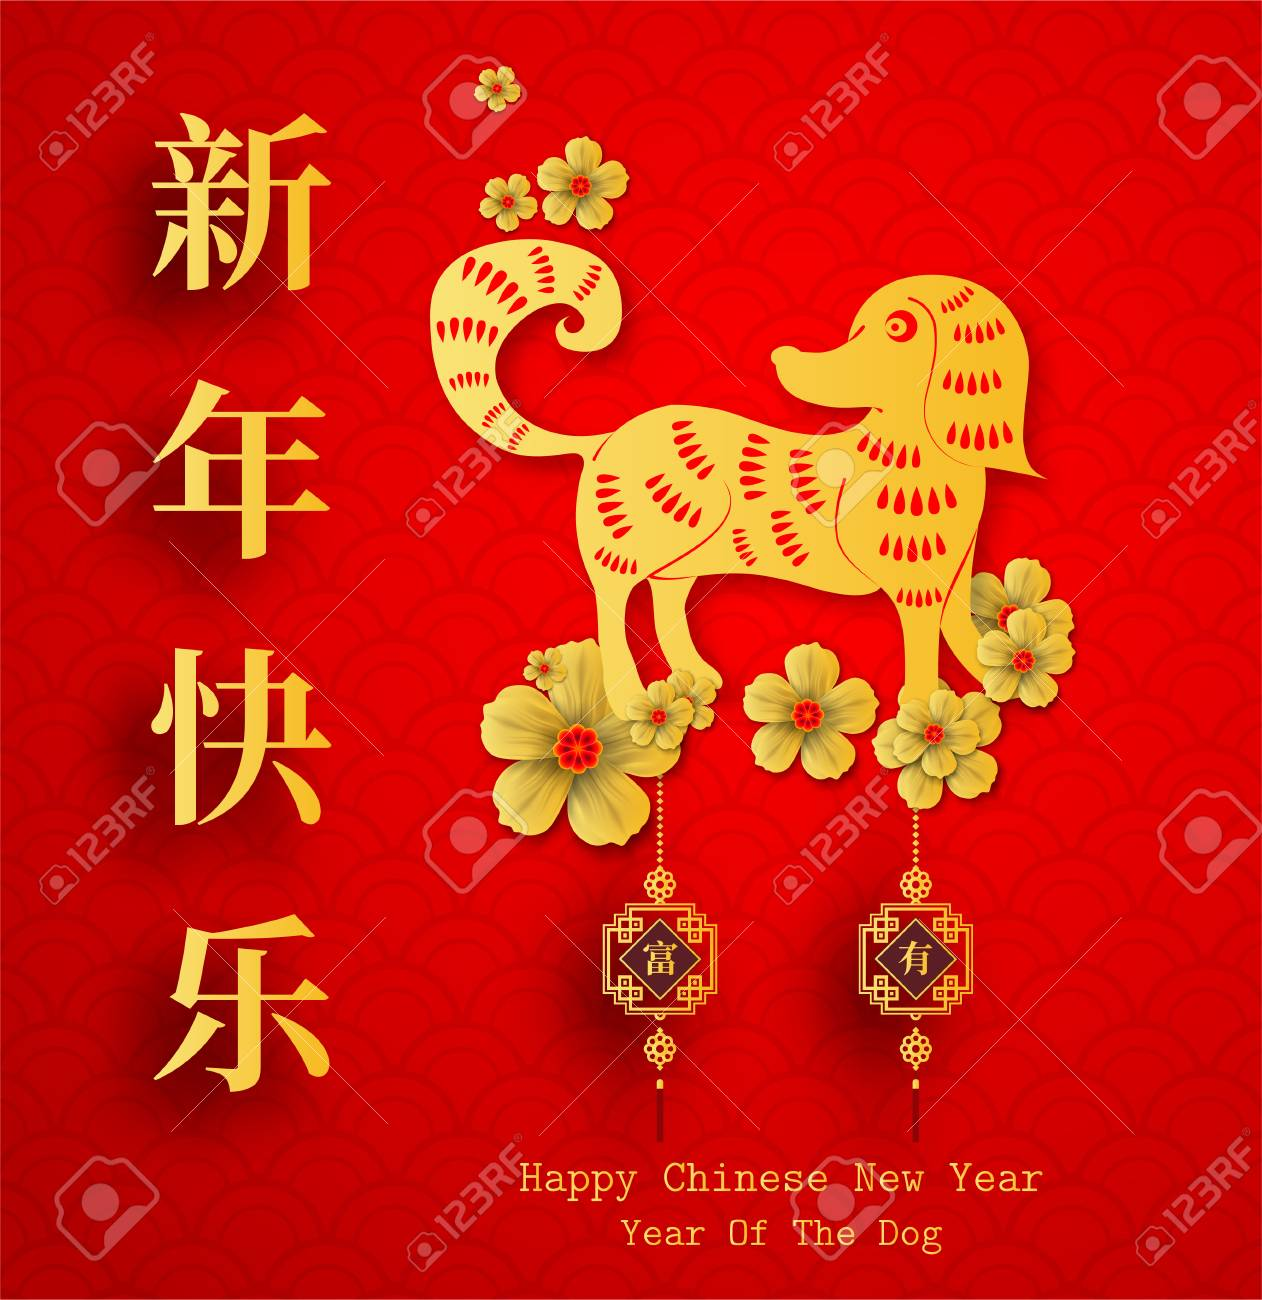 2018 chinese new year paper cutting year of dog vector design for your